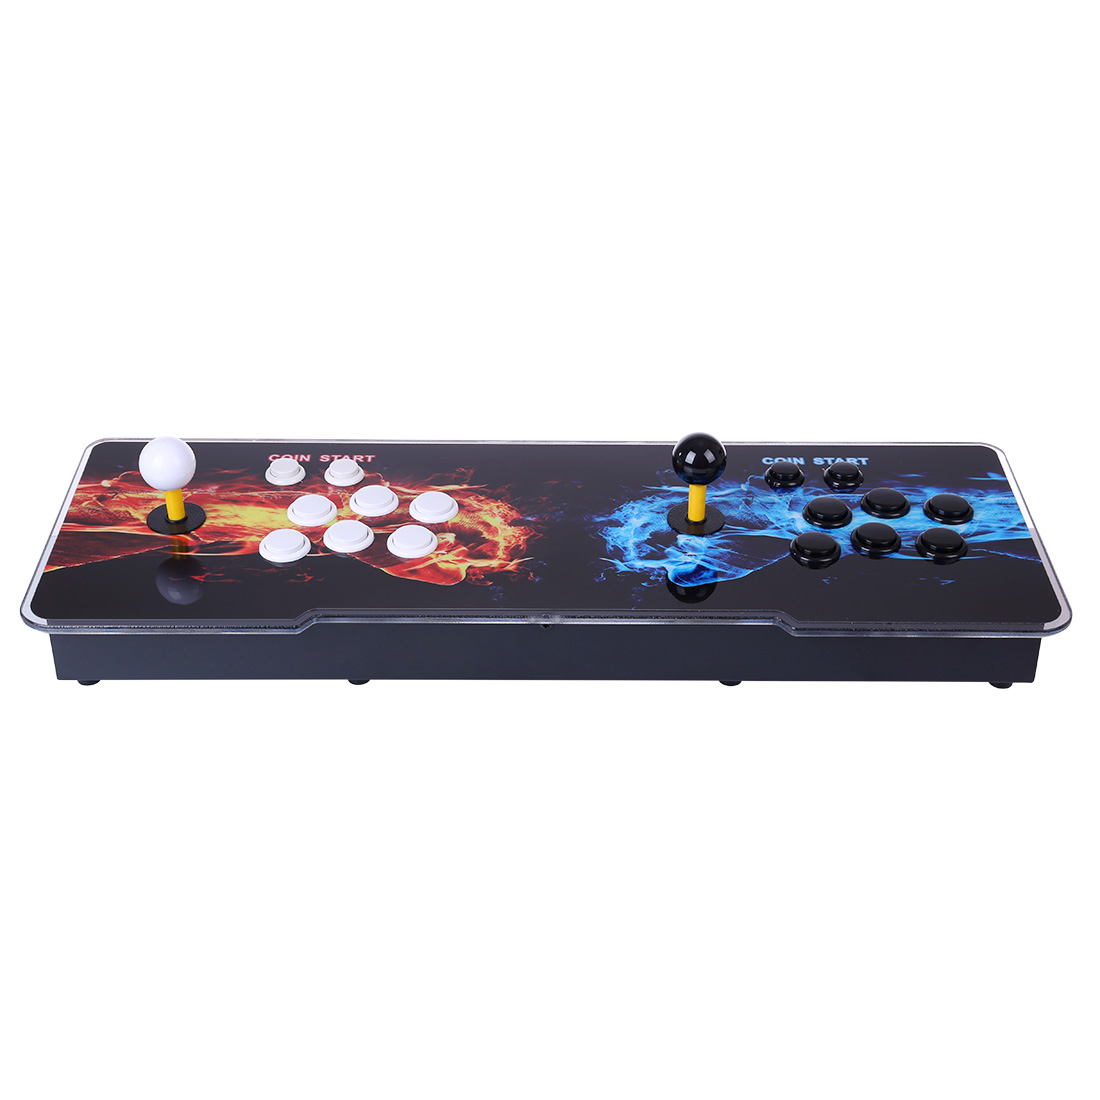 Pandora Box 3D 12S 3333 Games Multi-player Arcade Game Console (Artwork: Double Fists) (Metal Body)